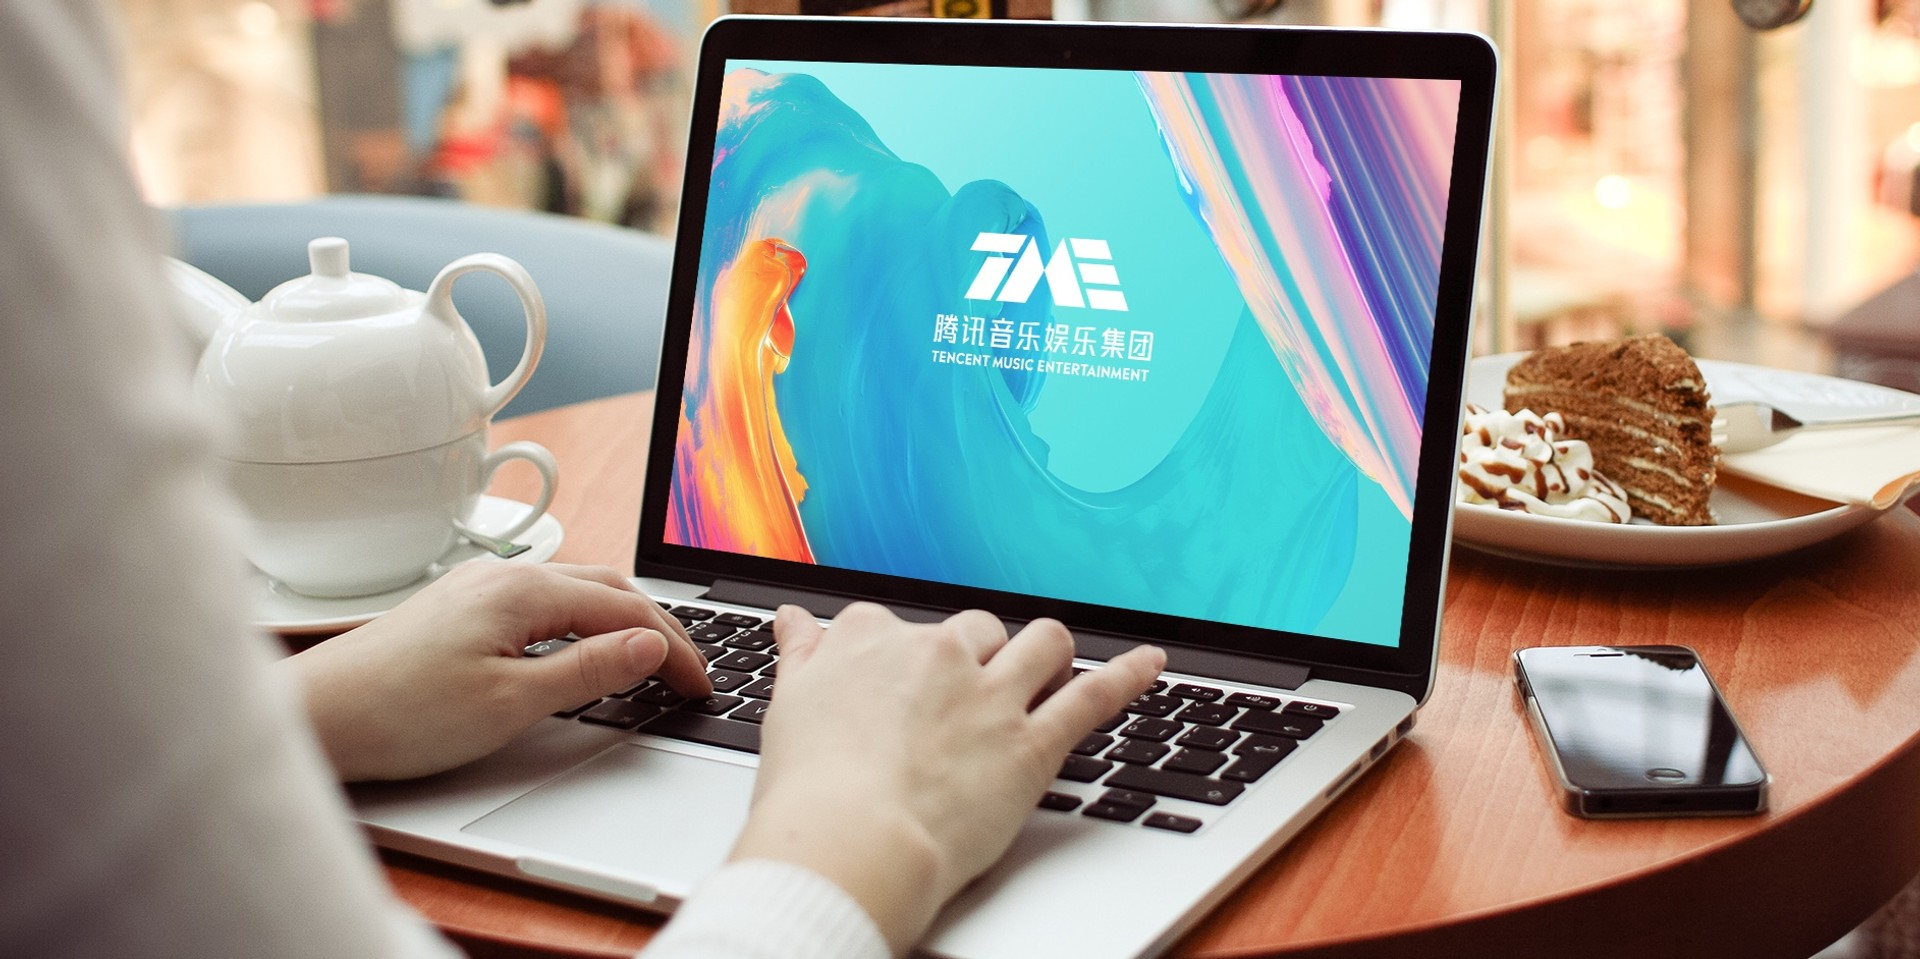 Tencent Music Entertainment records 4.9 million new music paying users, reveals efforts to enrich content in Q1 2021 report